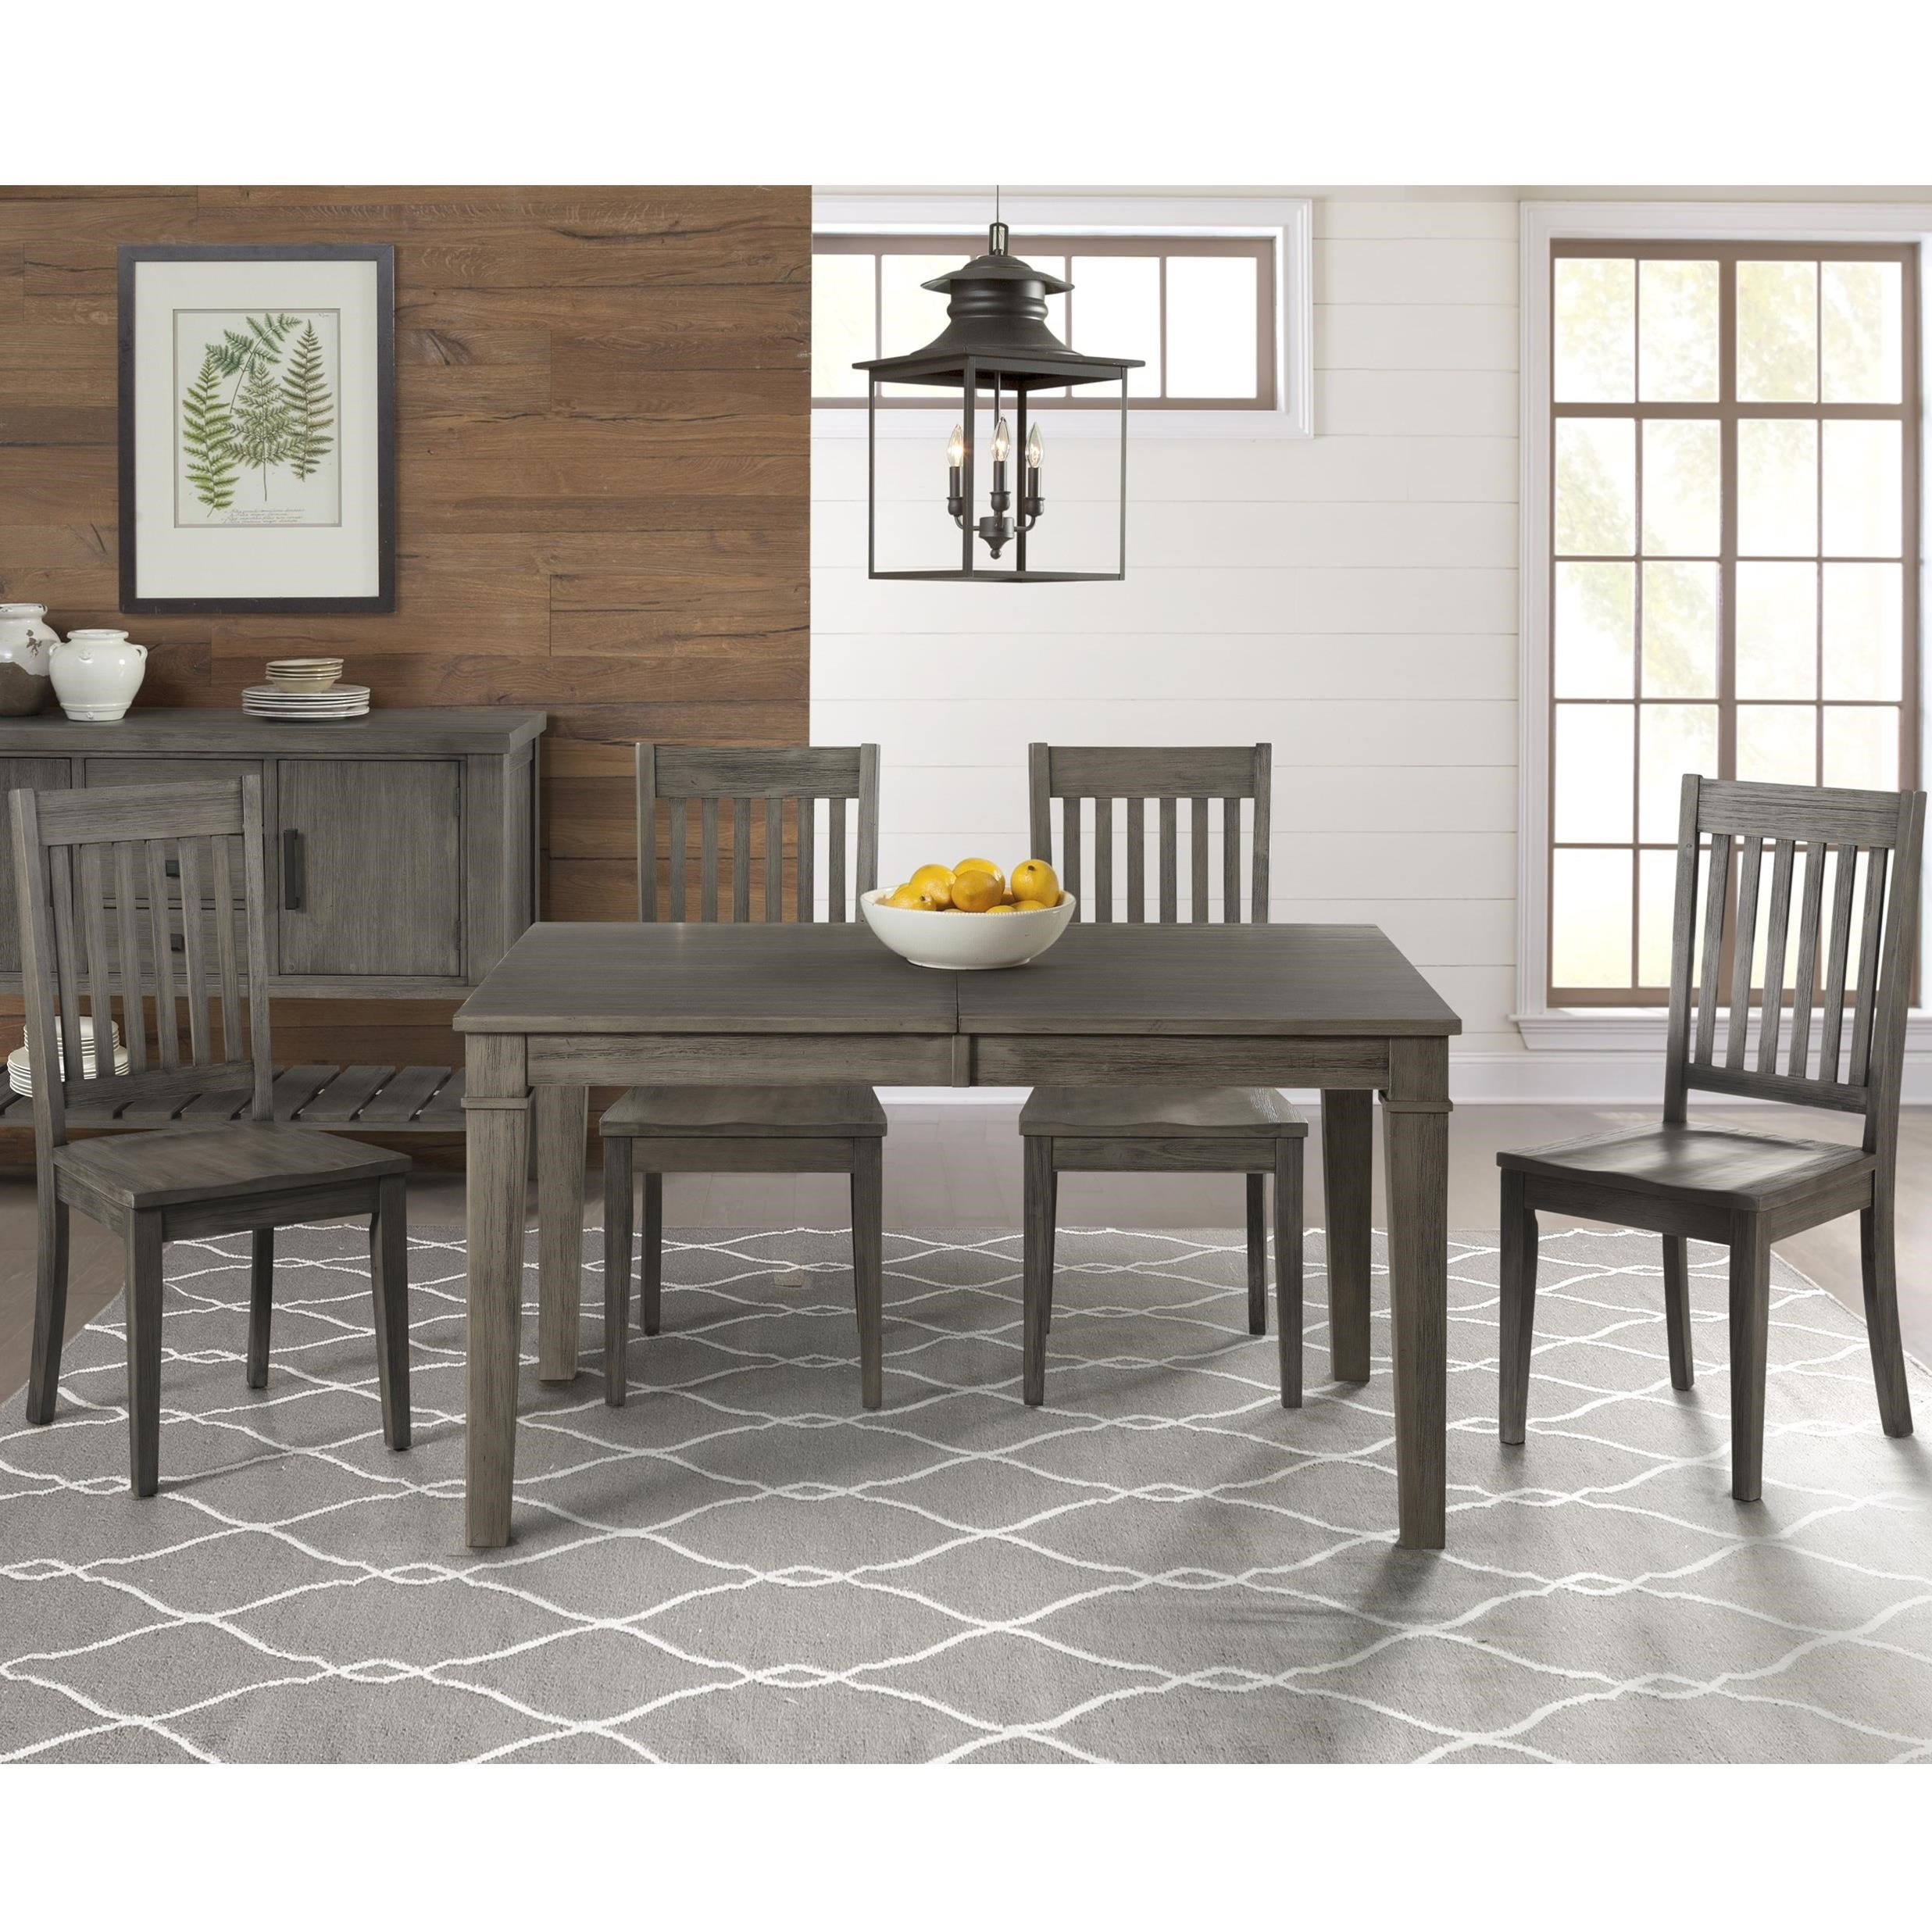 5 Piece Transitional Table and Slat Back Chair Set